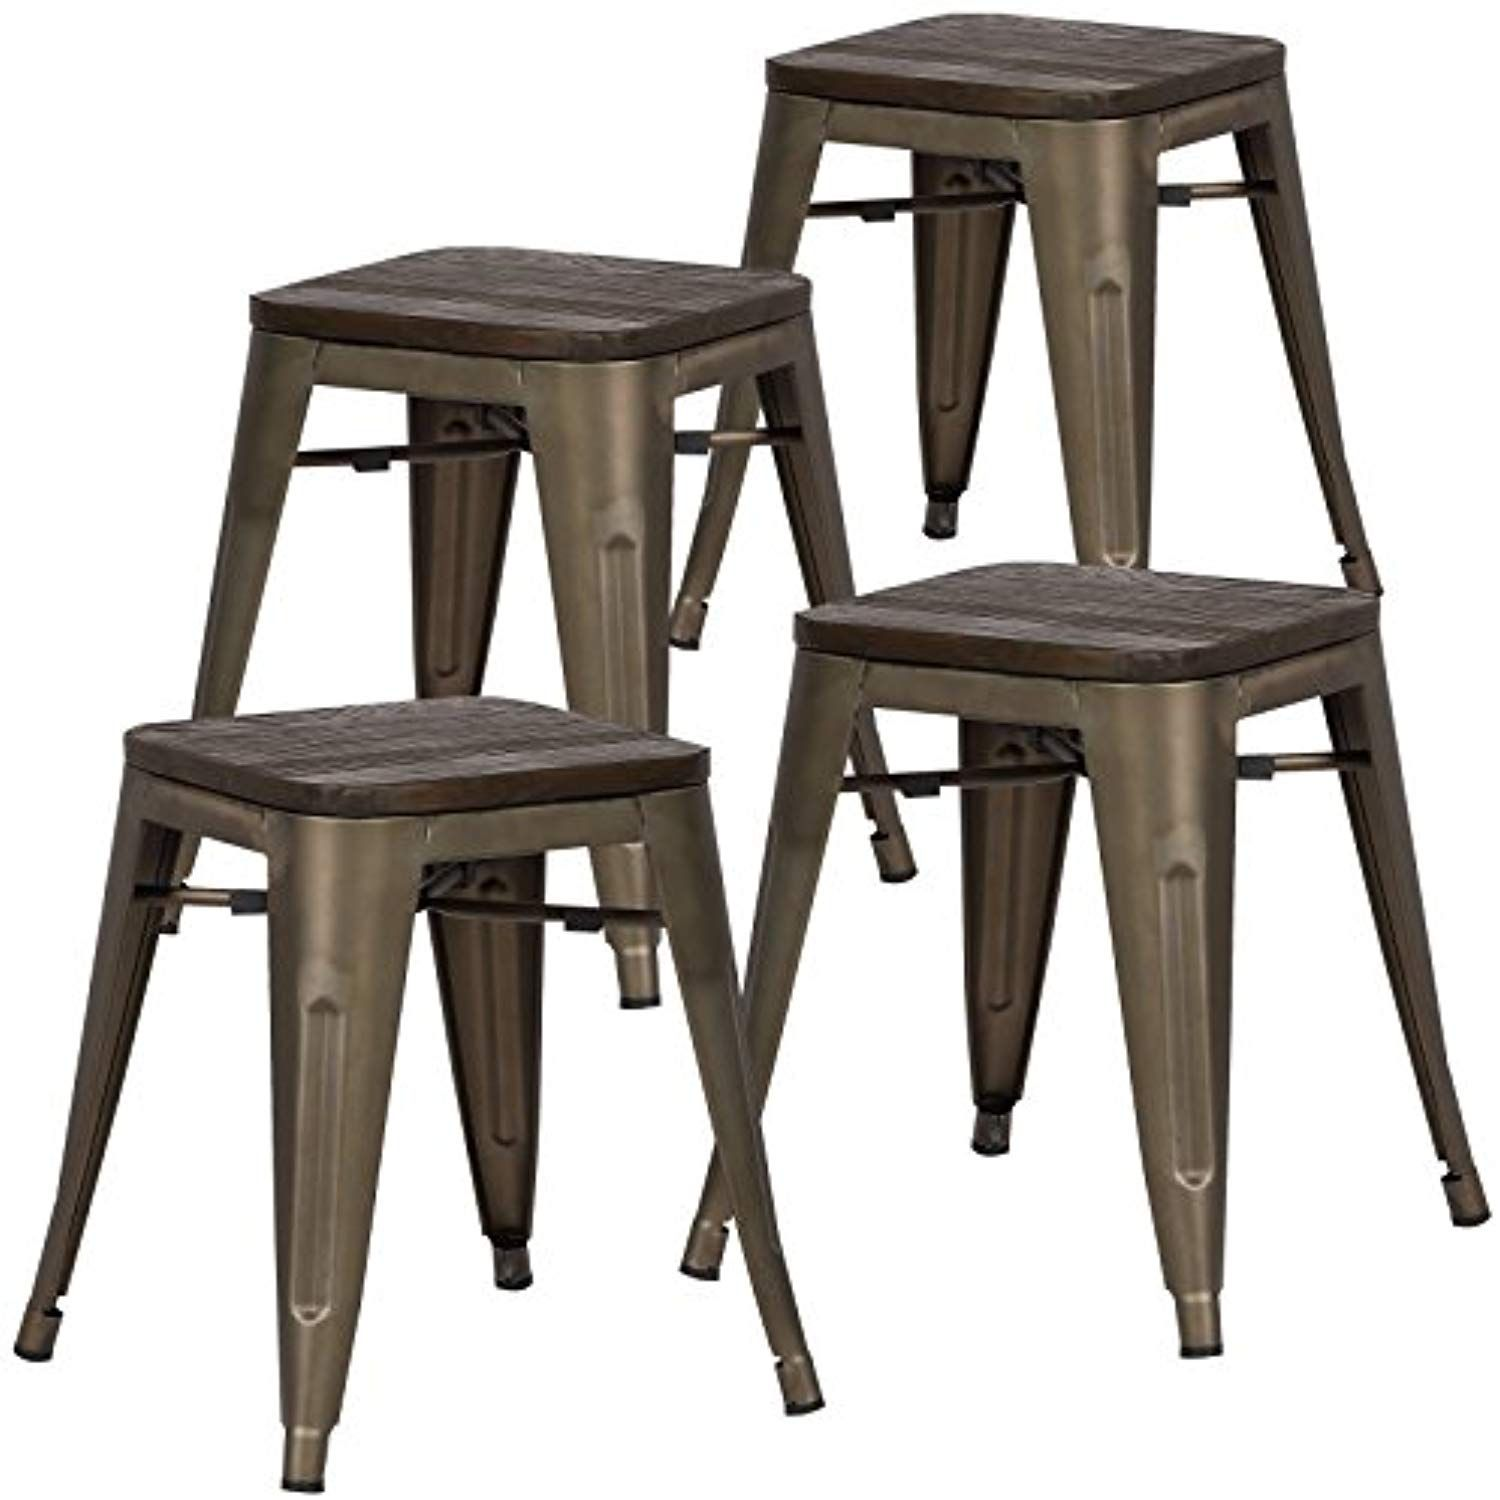 Poly And Bark Trattoria 18 Stool In Elmwood Bronze Set Of 4 You Can Find More Details By Visiting The Imag Side Chairs Dining Kitchen Seating Iron Table